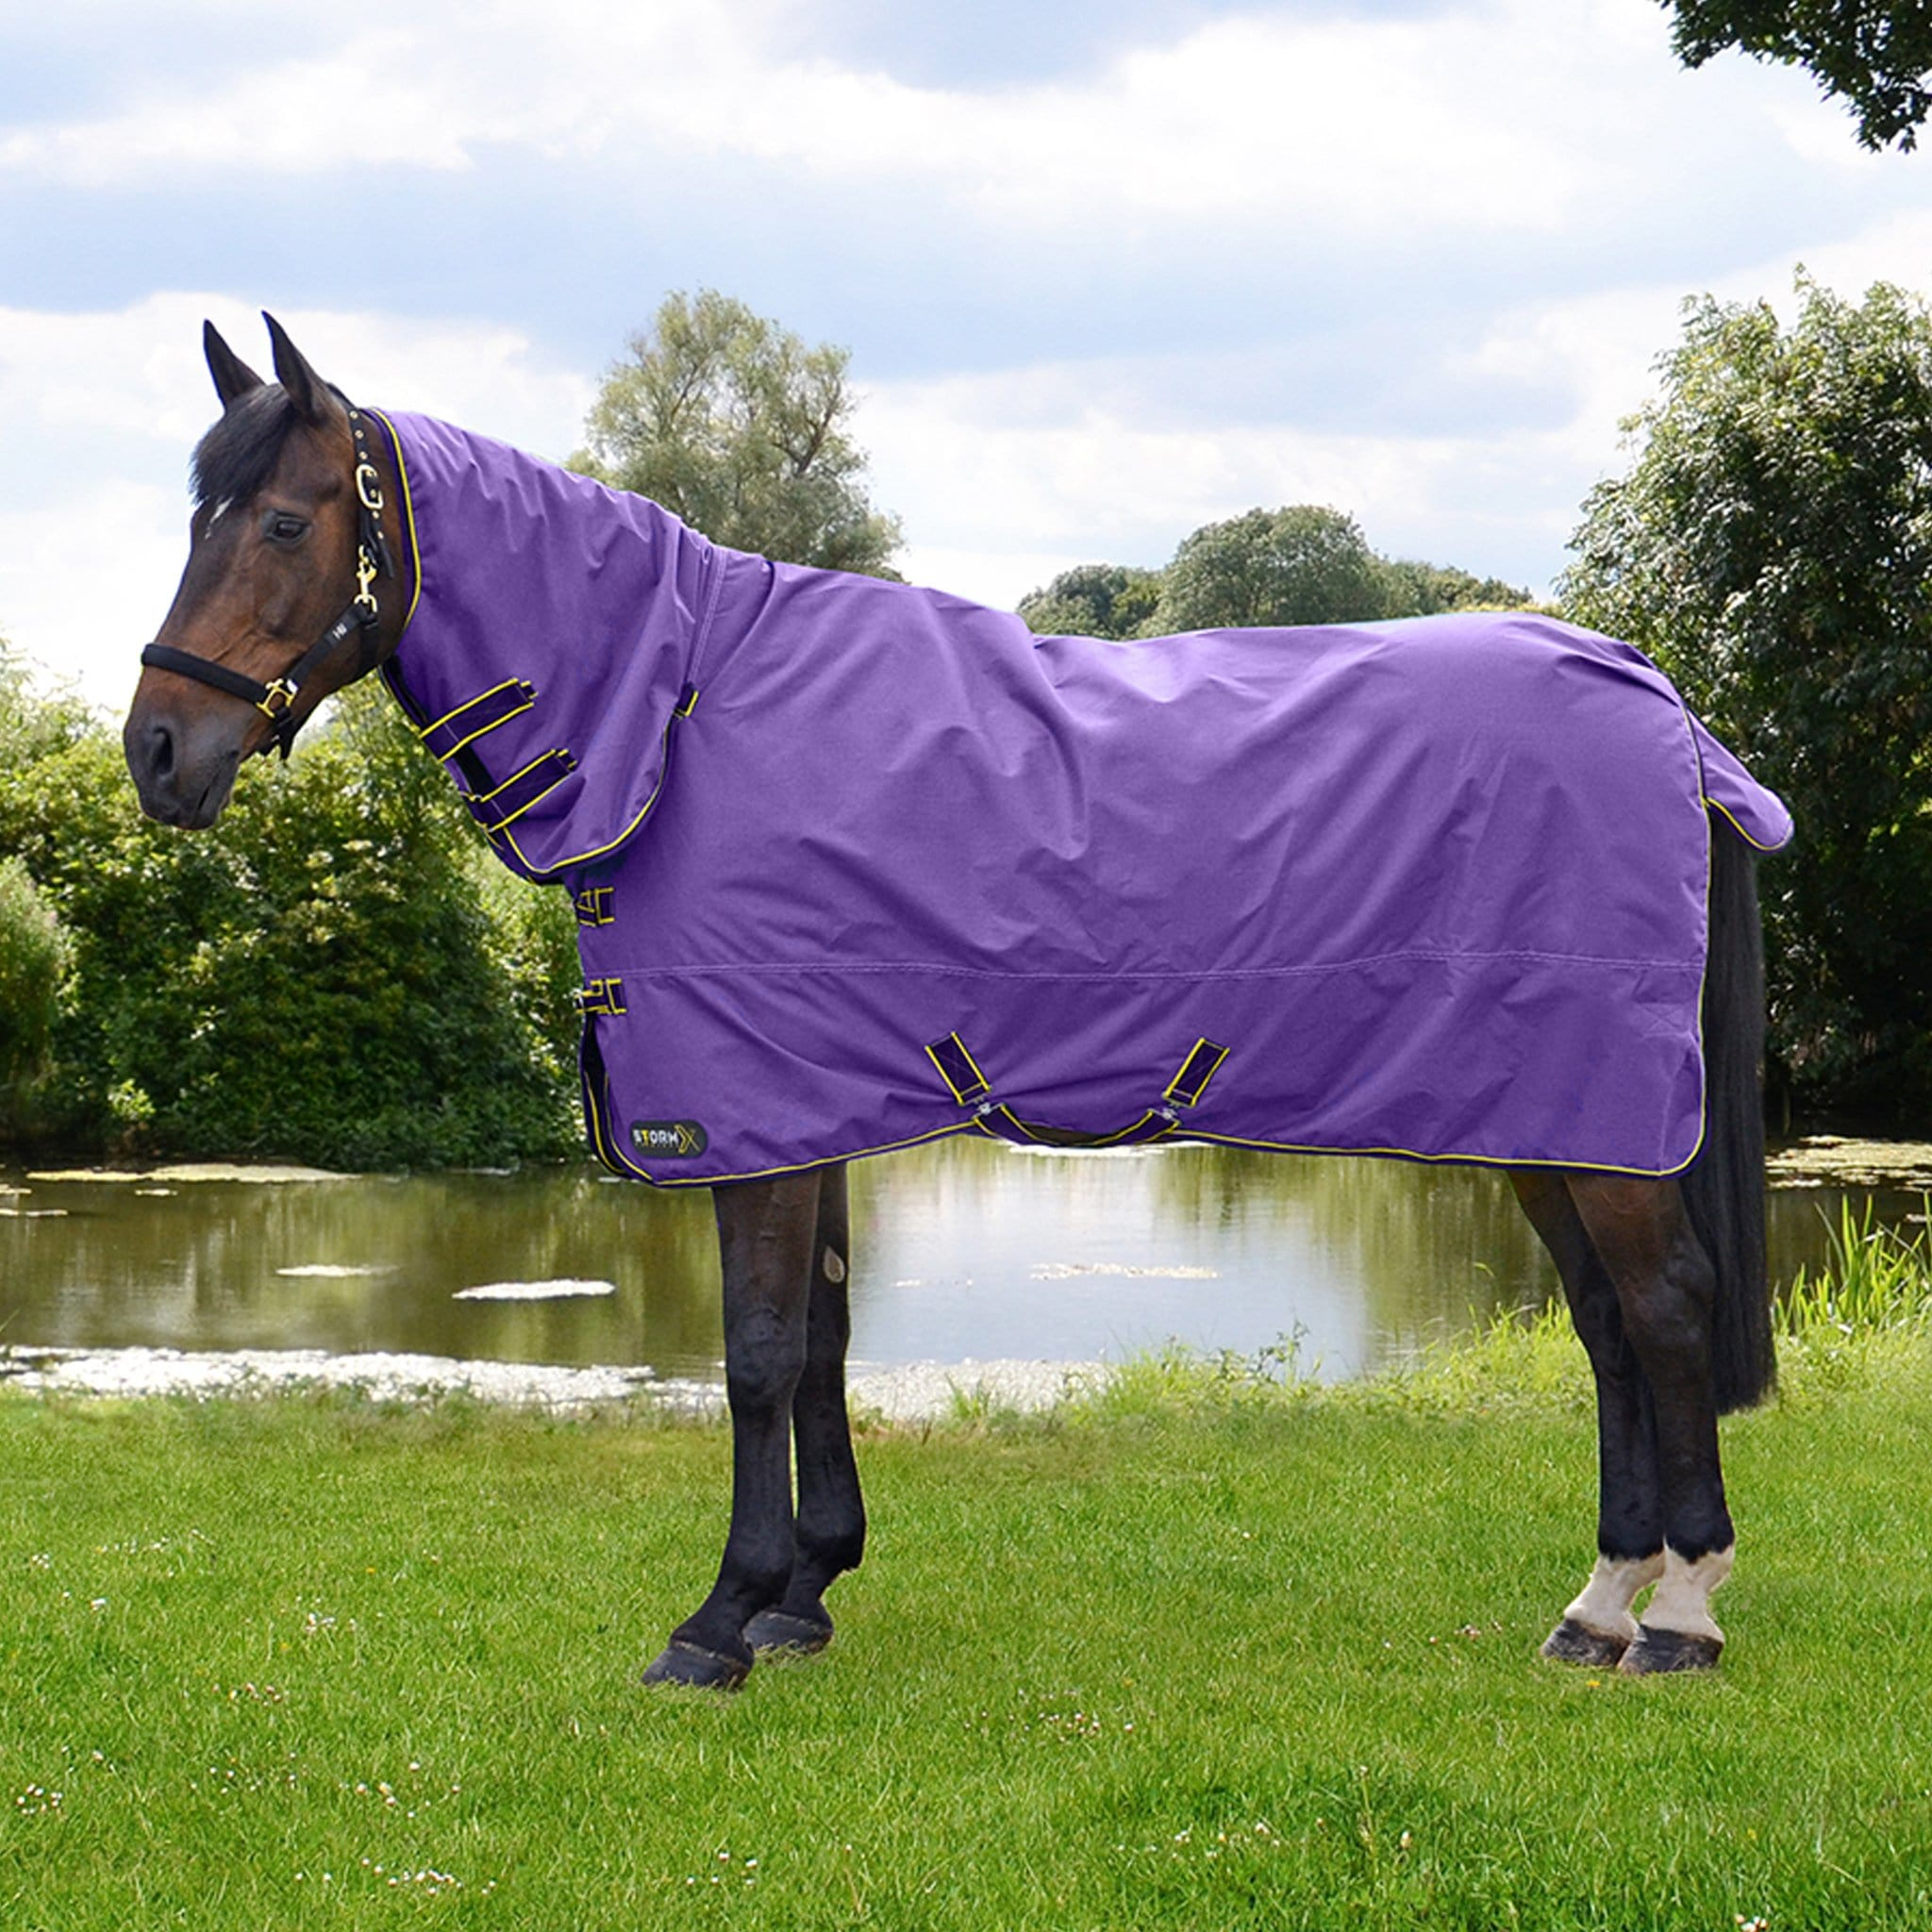 Hy StormX Original Lightweight 50g Combo Neck Turnout Rug 27835 Royal Purple On Horse By Pond